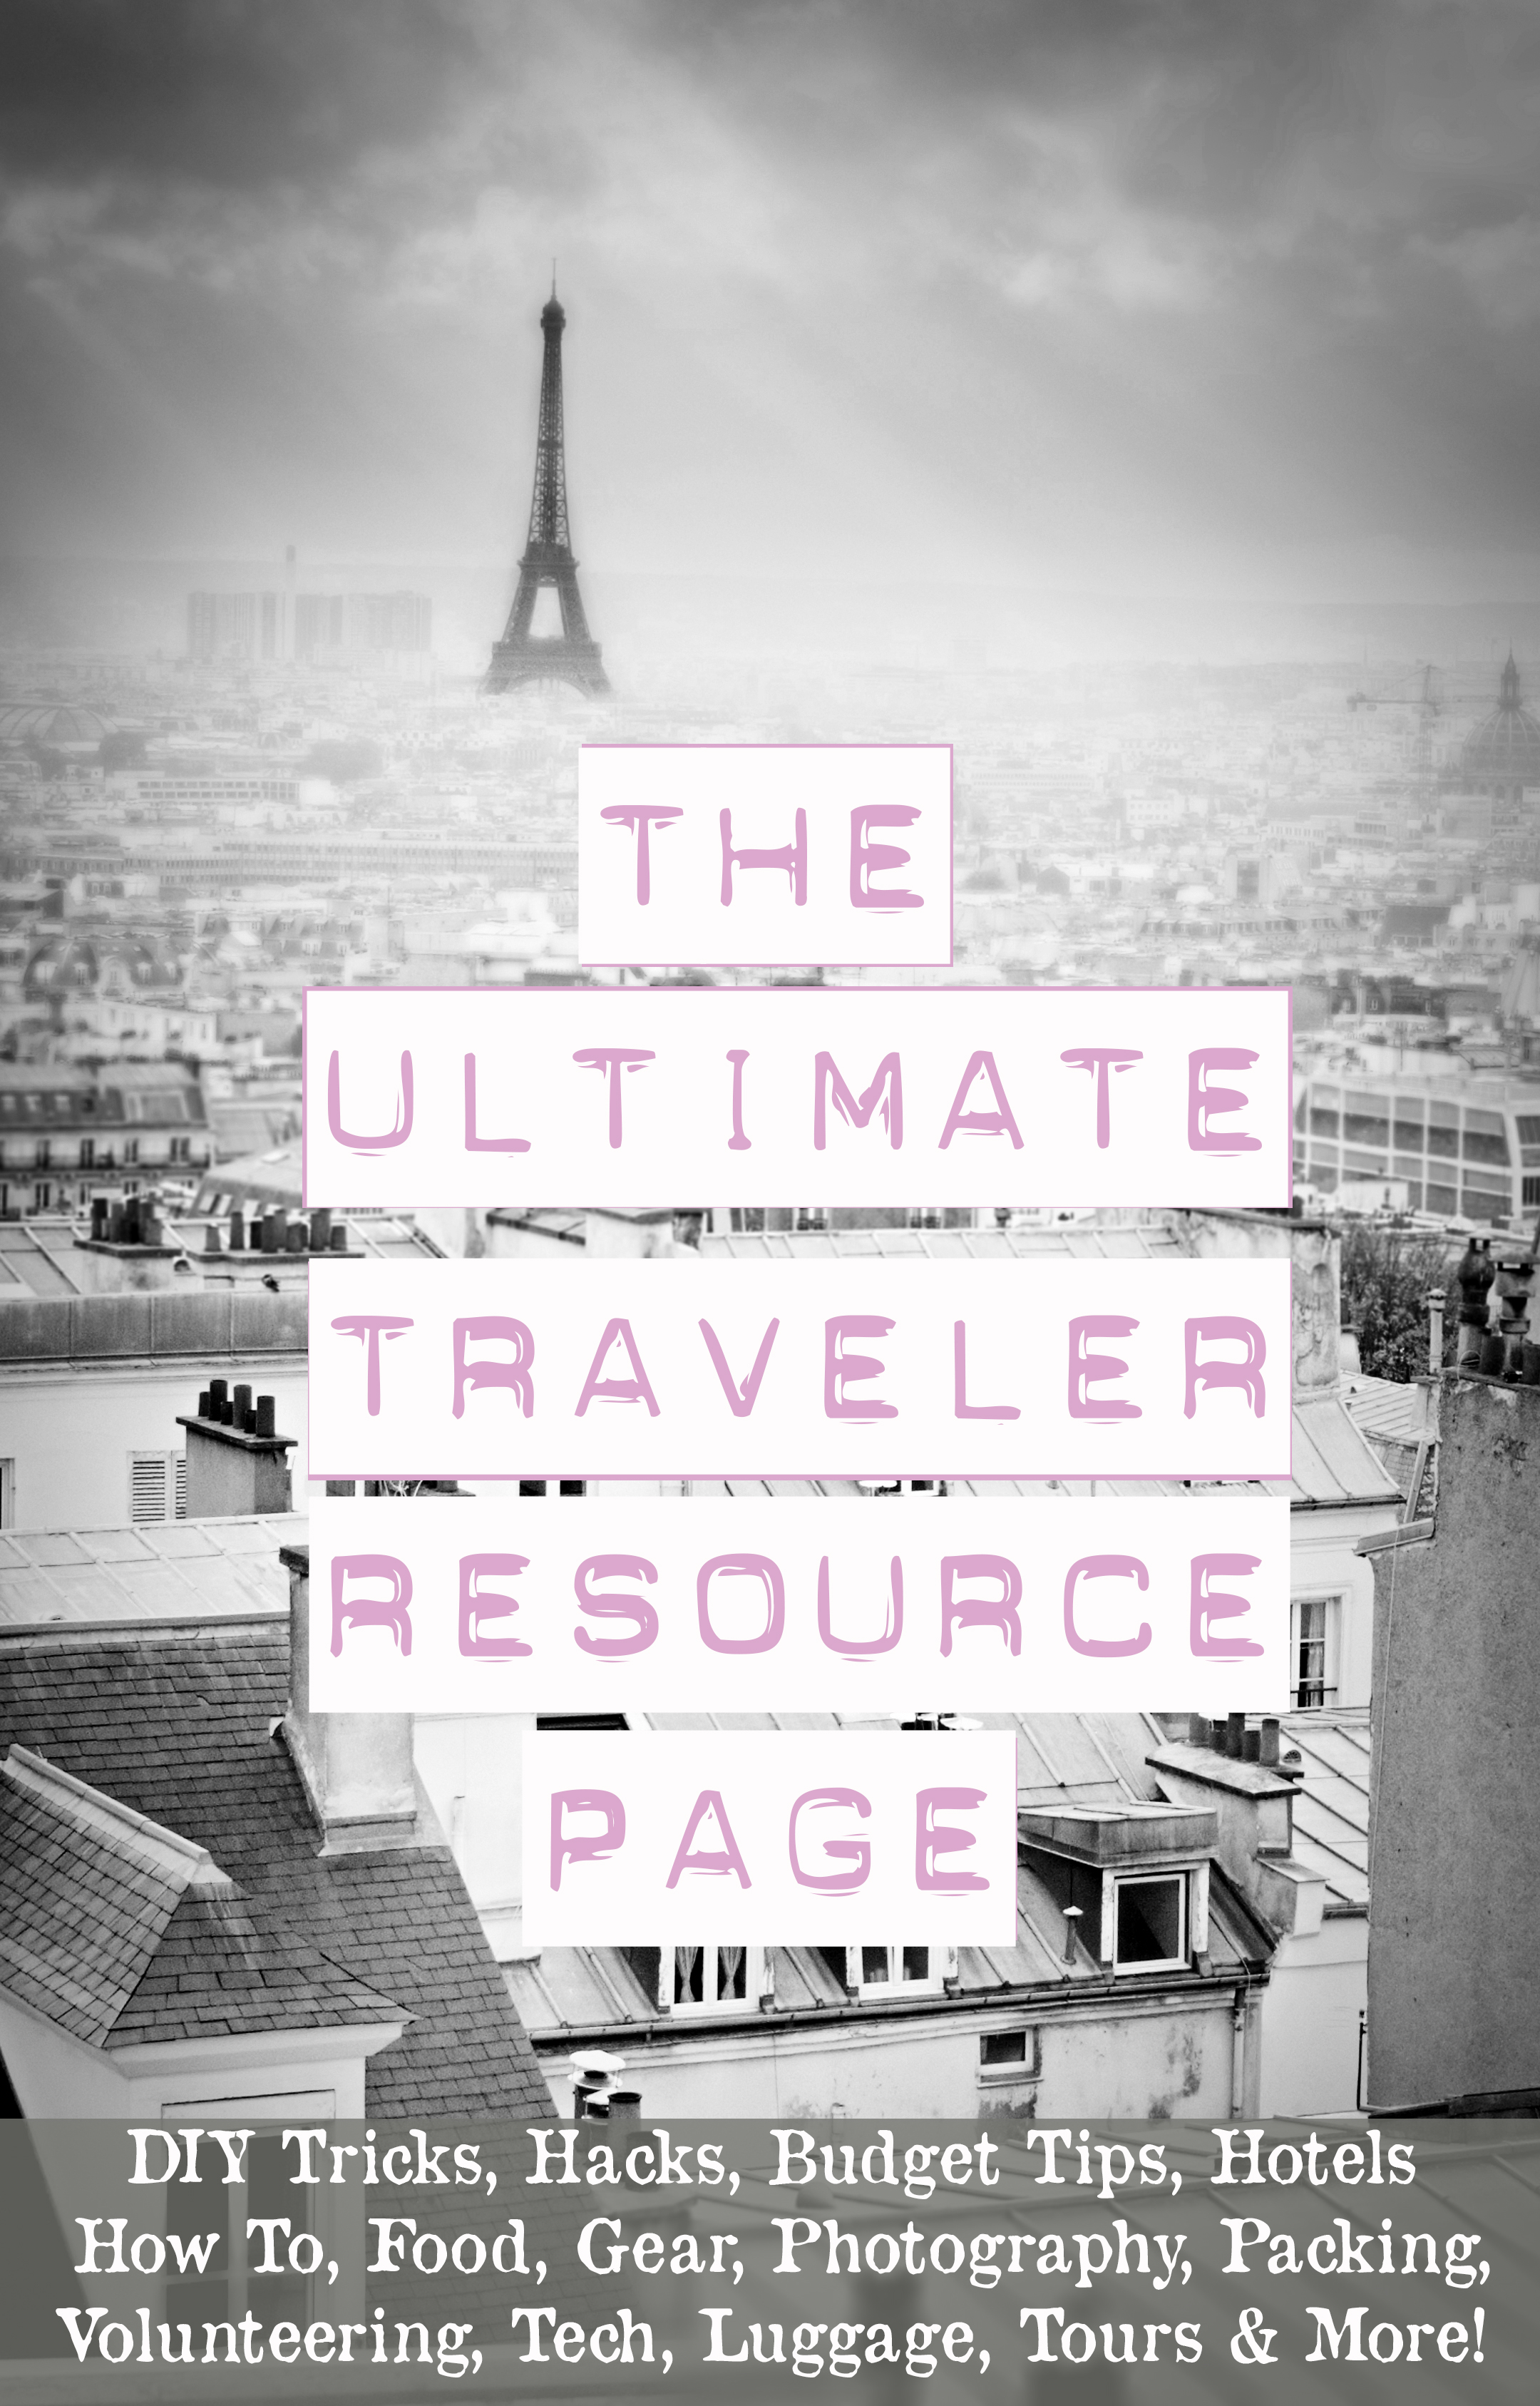 travel resource page Traveler Resources